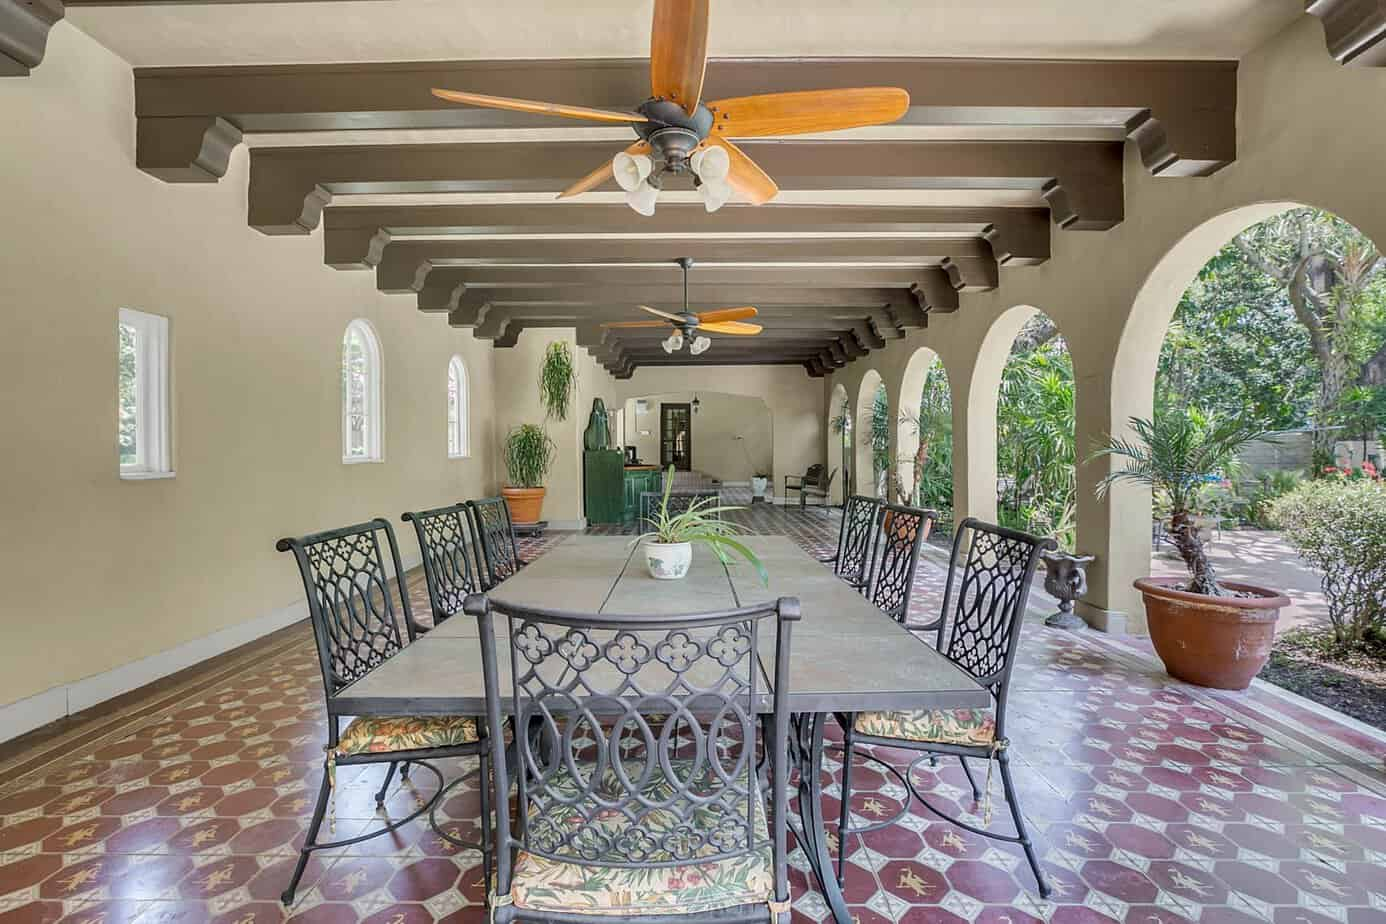 Loggia with beamed ceilings, red mosaic tile, five arched doors, and outdoor table for the home for sale at 4024 W Bay to Bay Tampa FL 33629